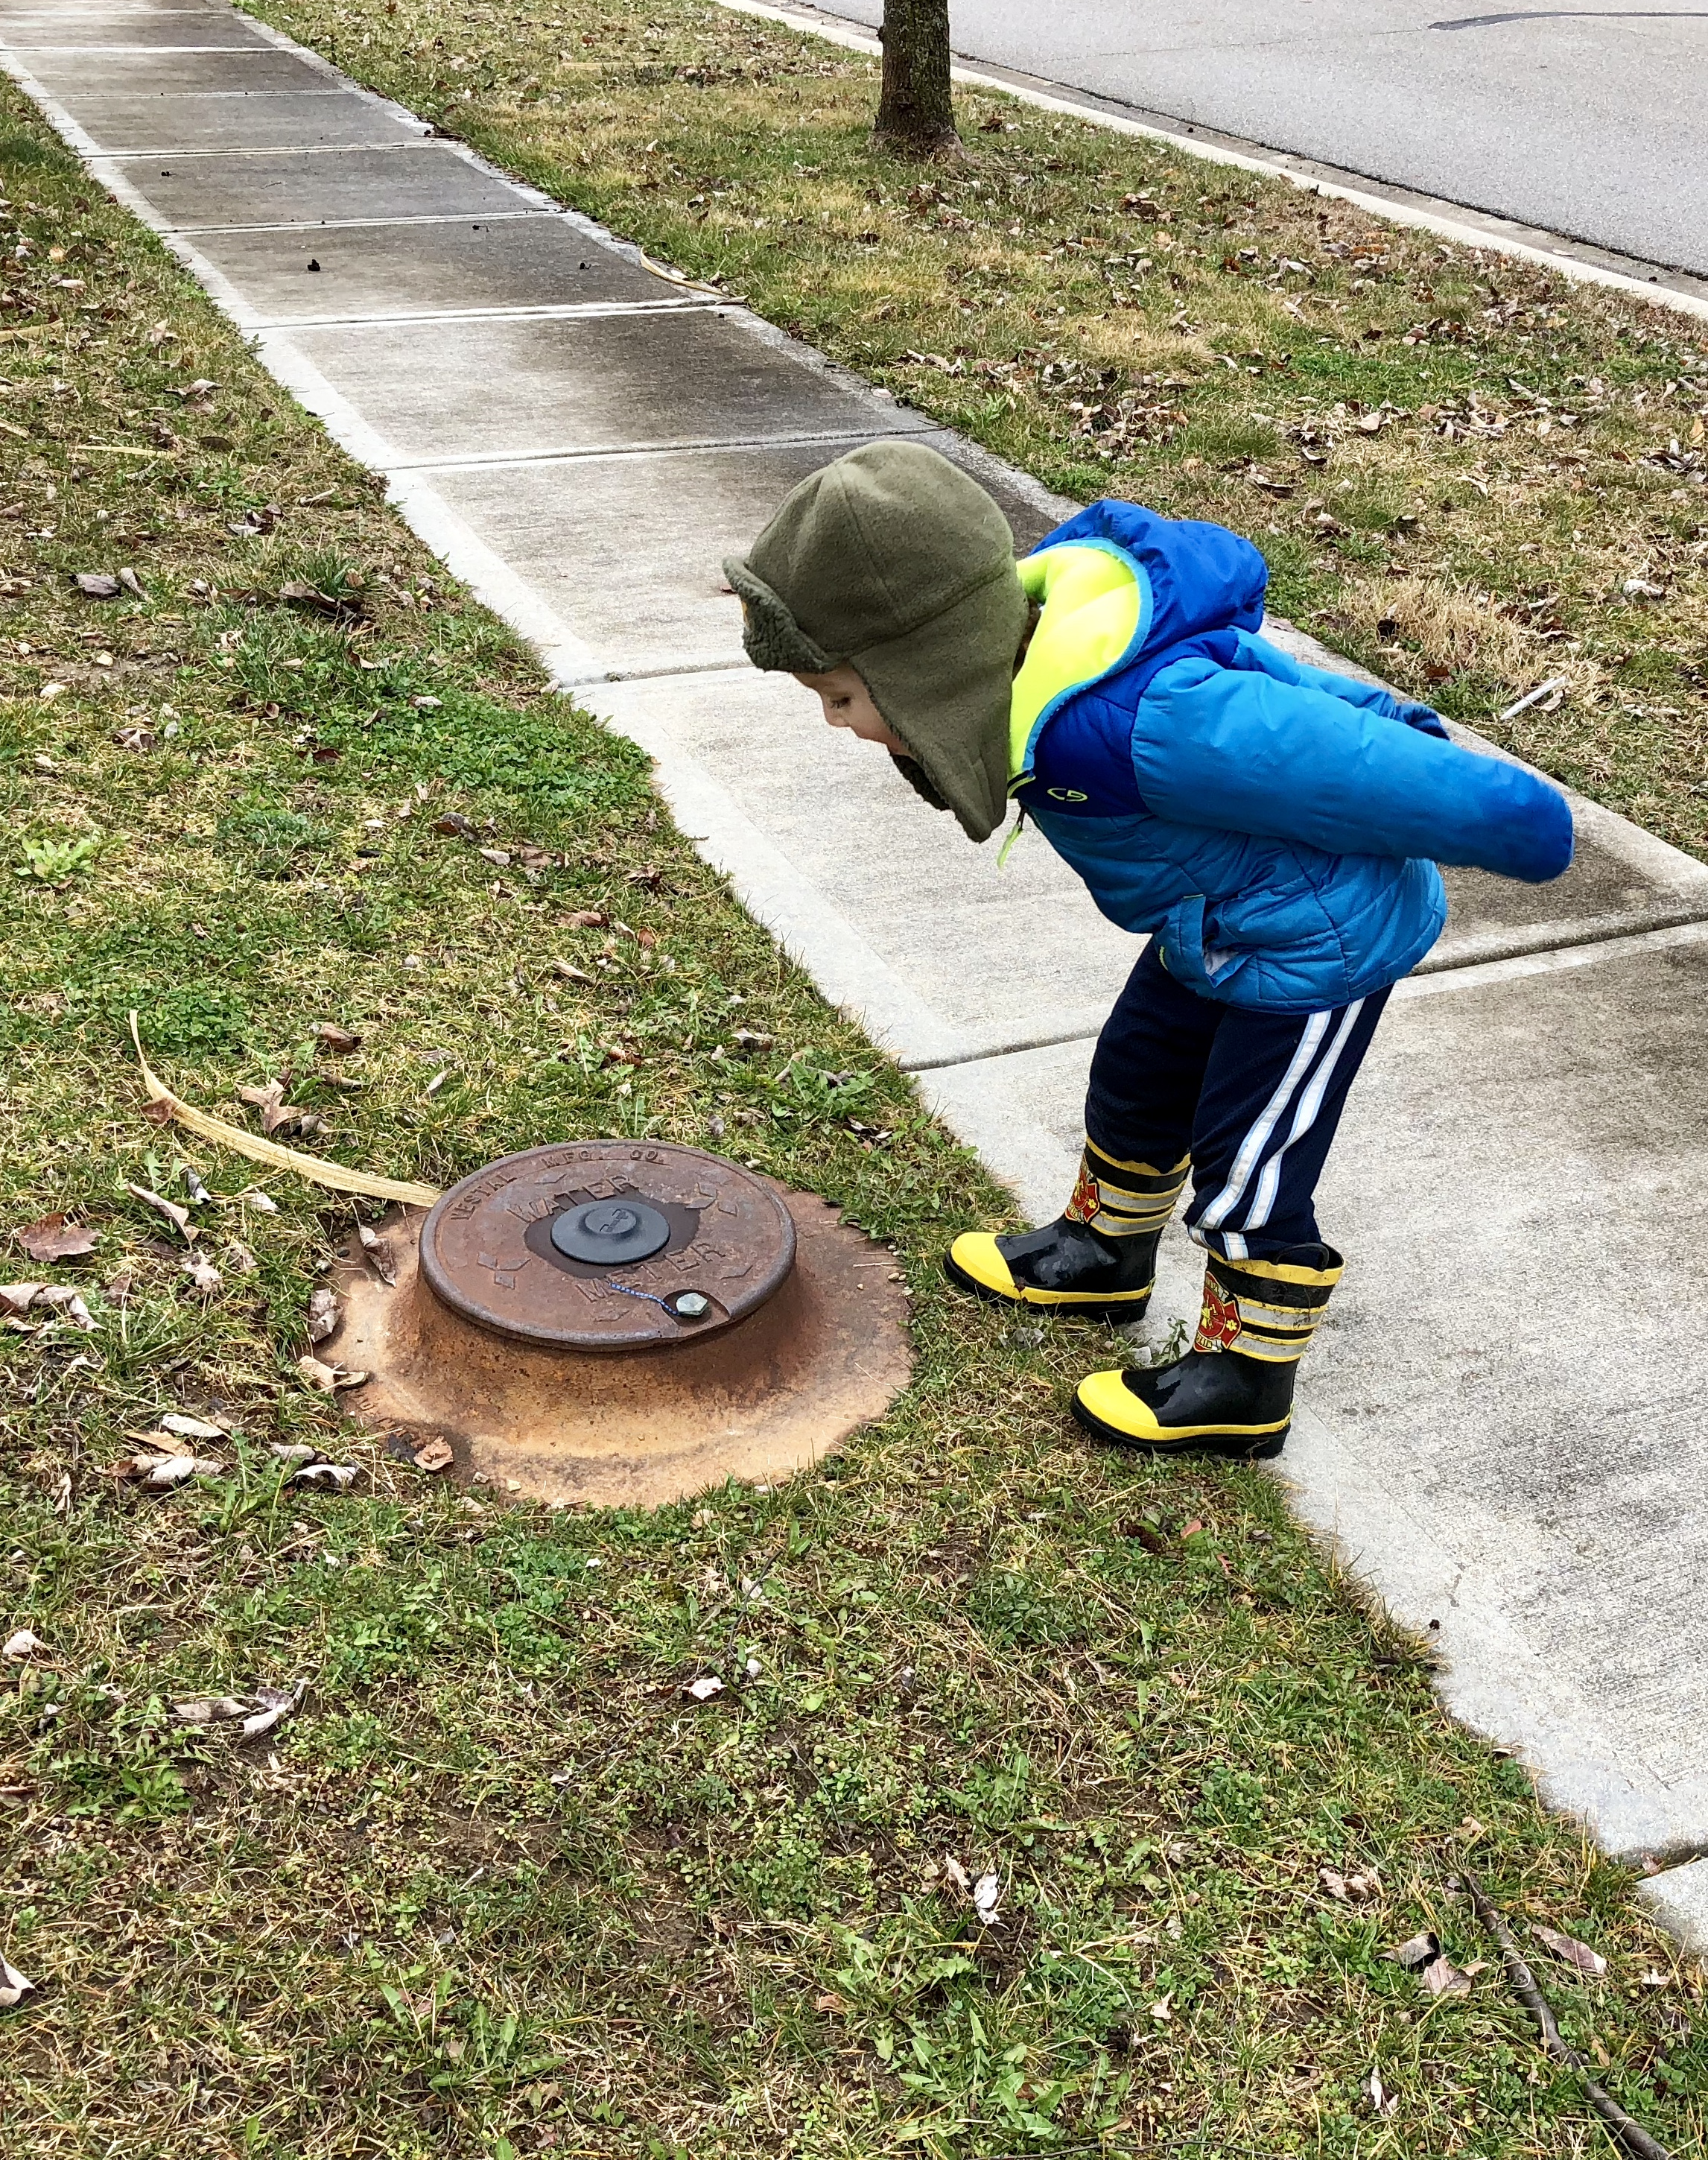 boy leaning over a water access cover and calling out